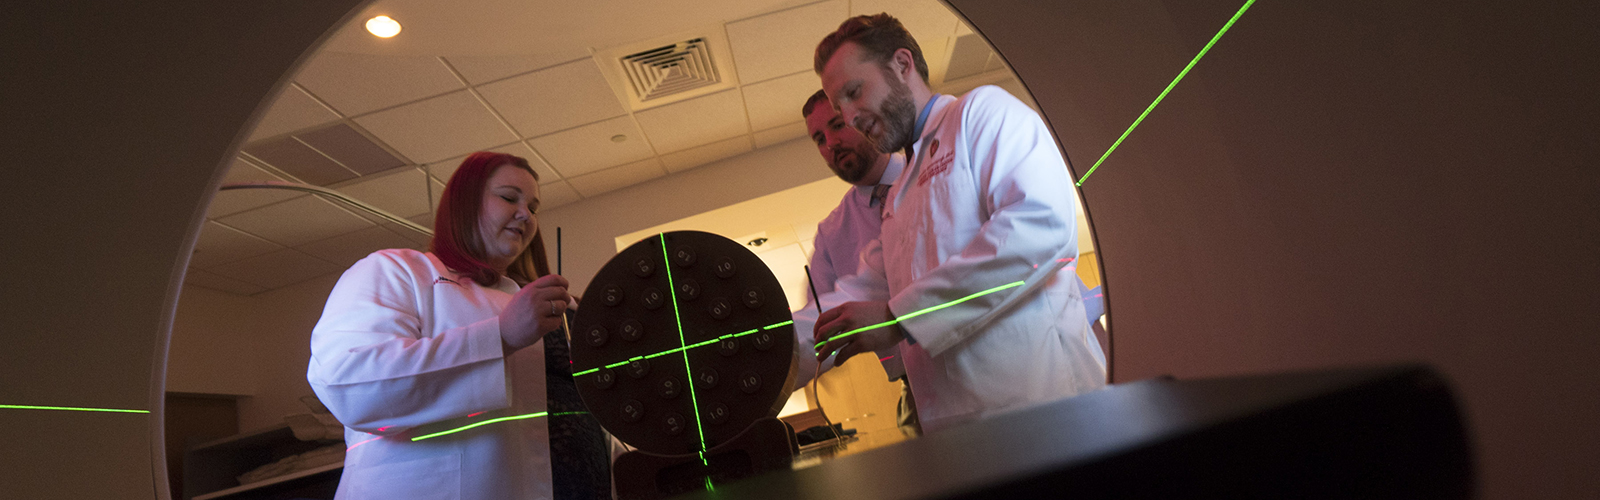 Medical Physics Residents and faculty adjusting LINAC